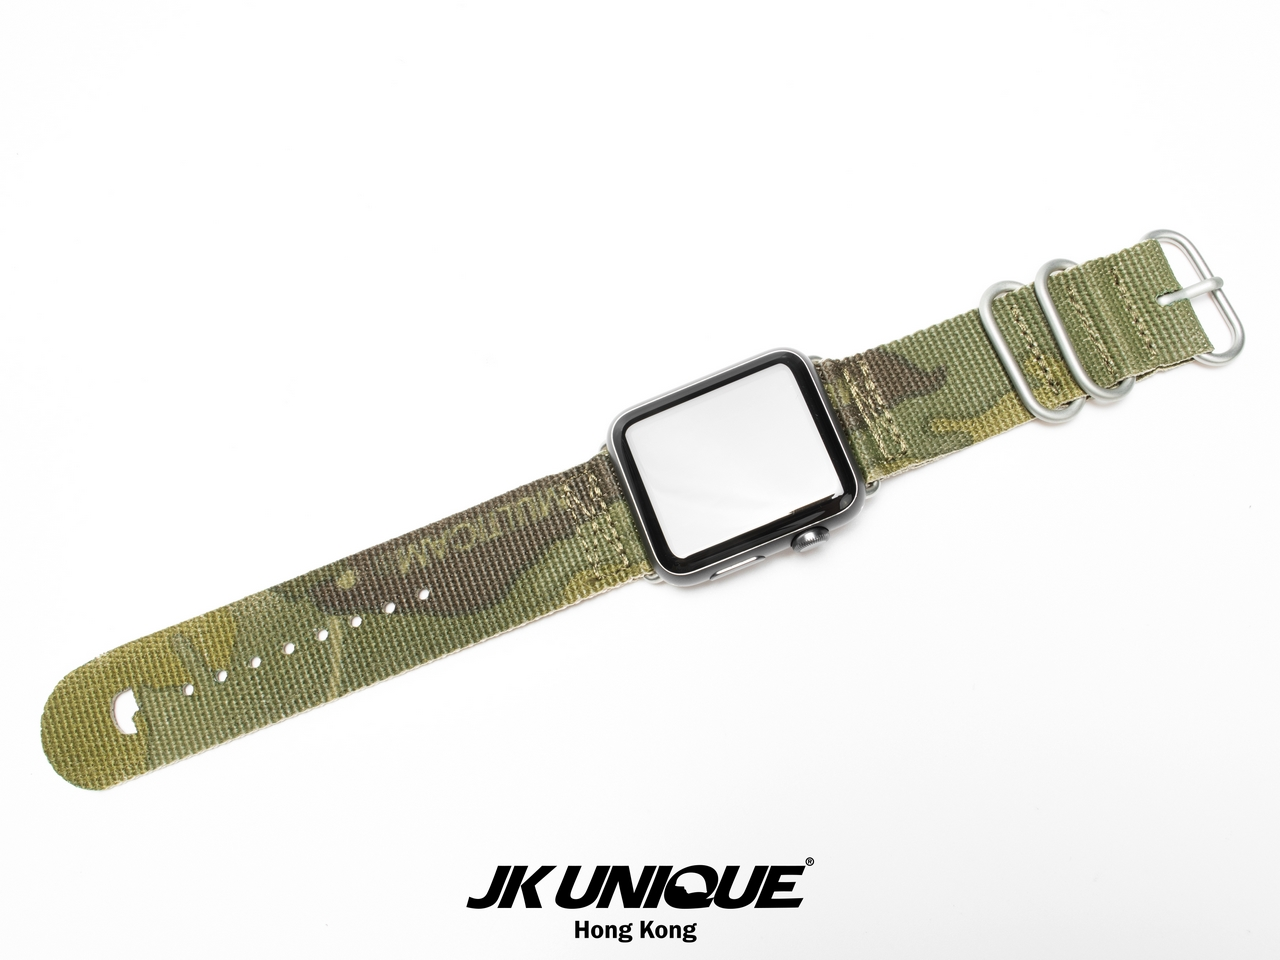 JK-UNIQUE-CAMO-NATO-Apple-Watch-Strap-42mm-SV-Multicam-Tropic-3 (1280).jpg